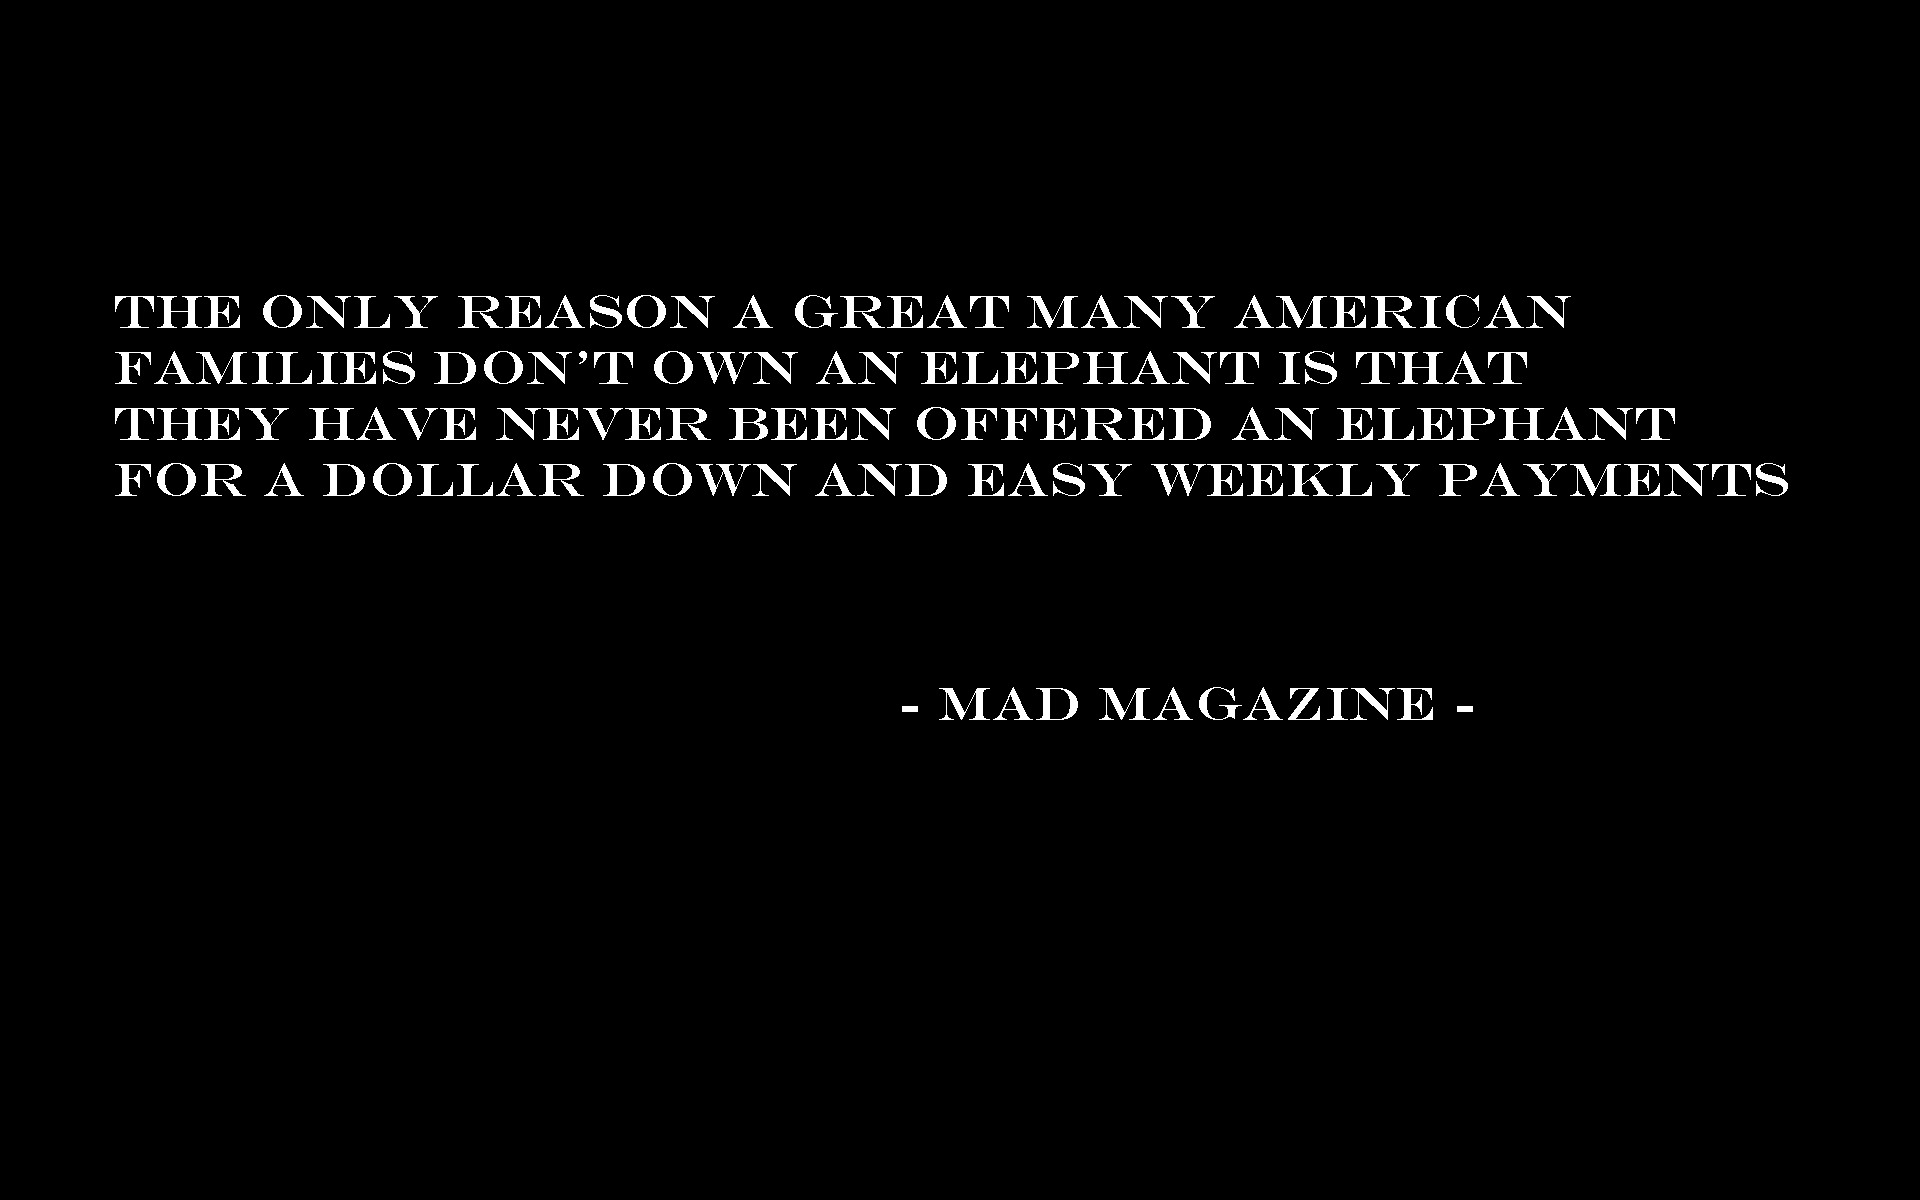 Quotes Mad magazine HD Wallpaper